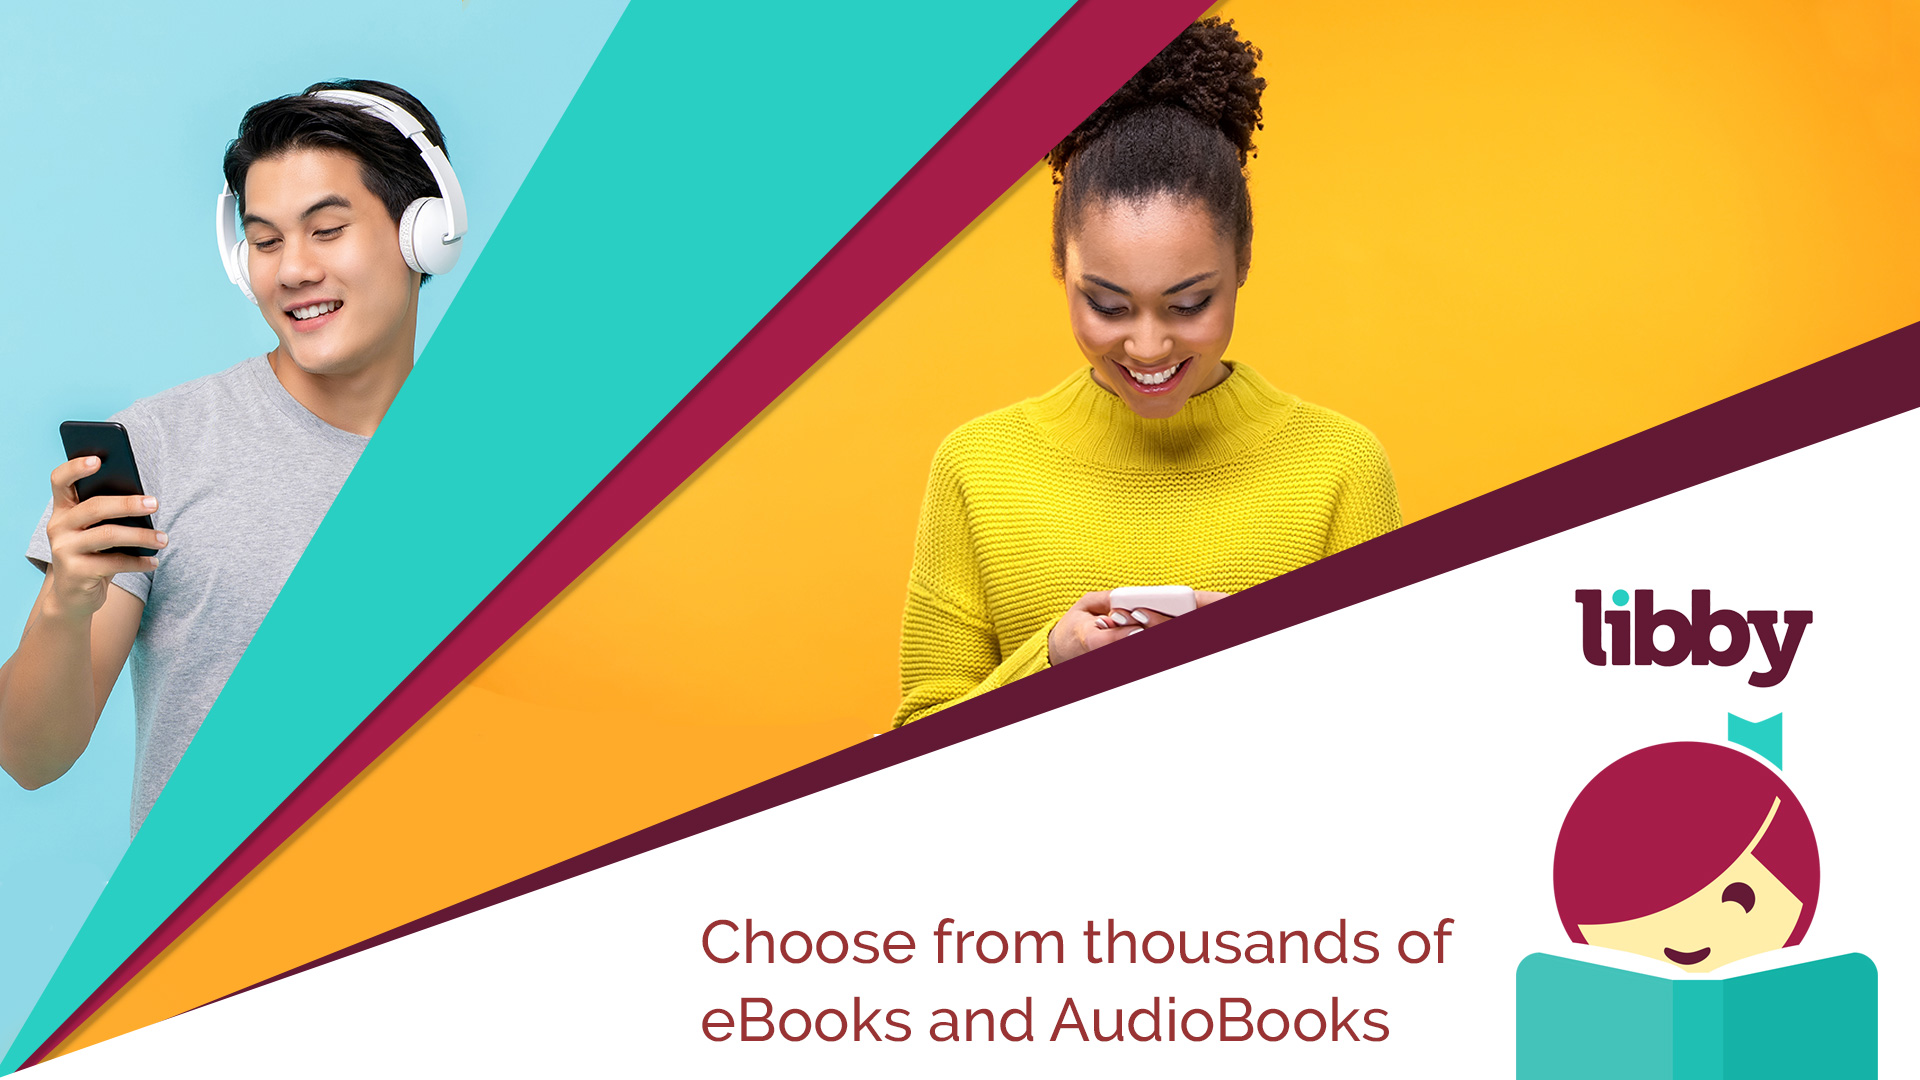 choose from thousands of ebooks and audiobooks